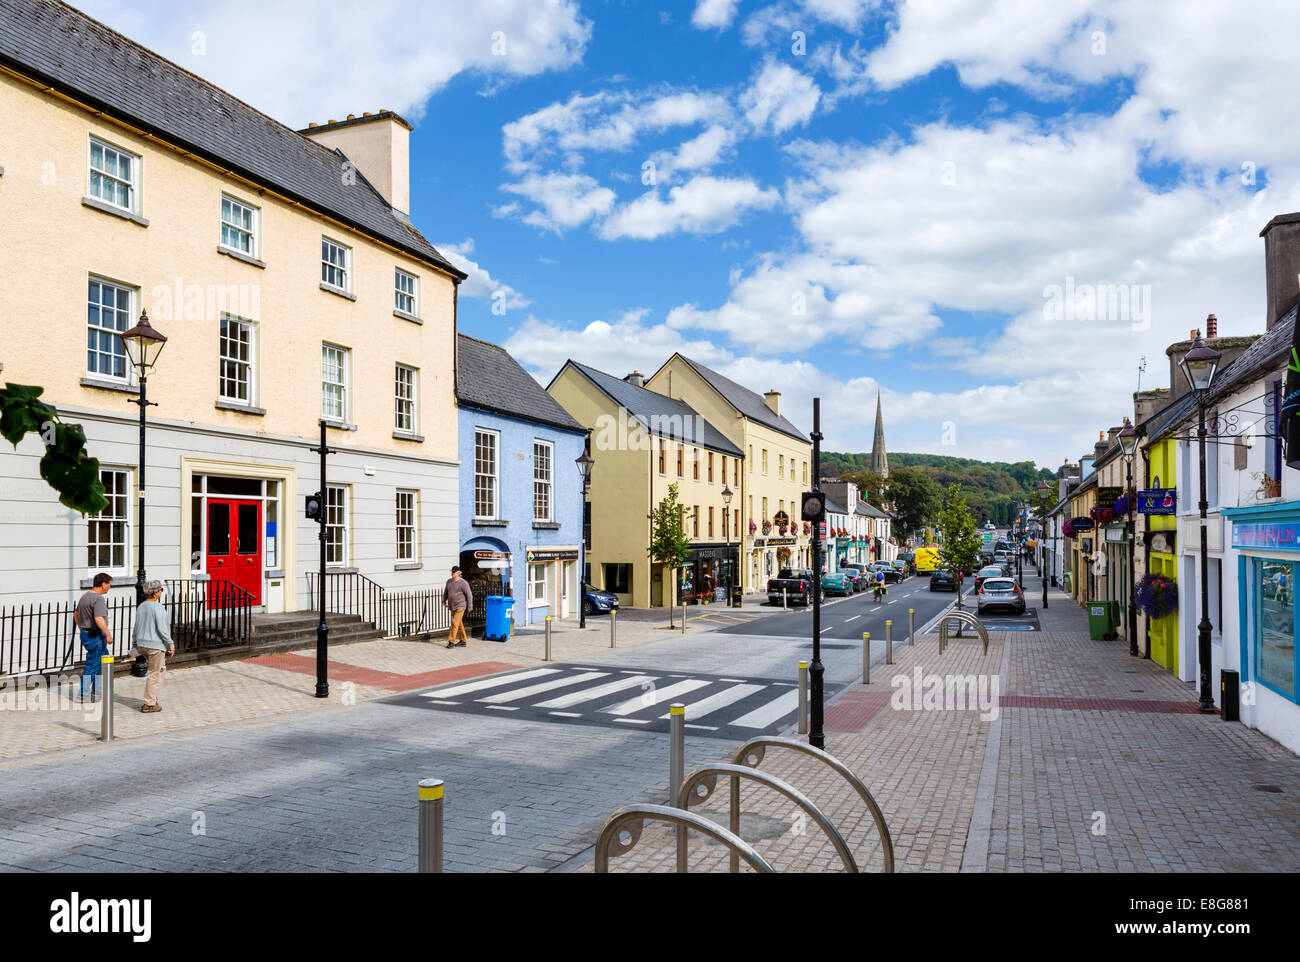 James Street in the town centre, Westport, County Mayo, Republic of Ireland - Stock Image